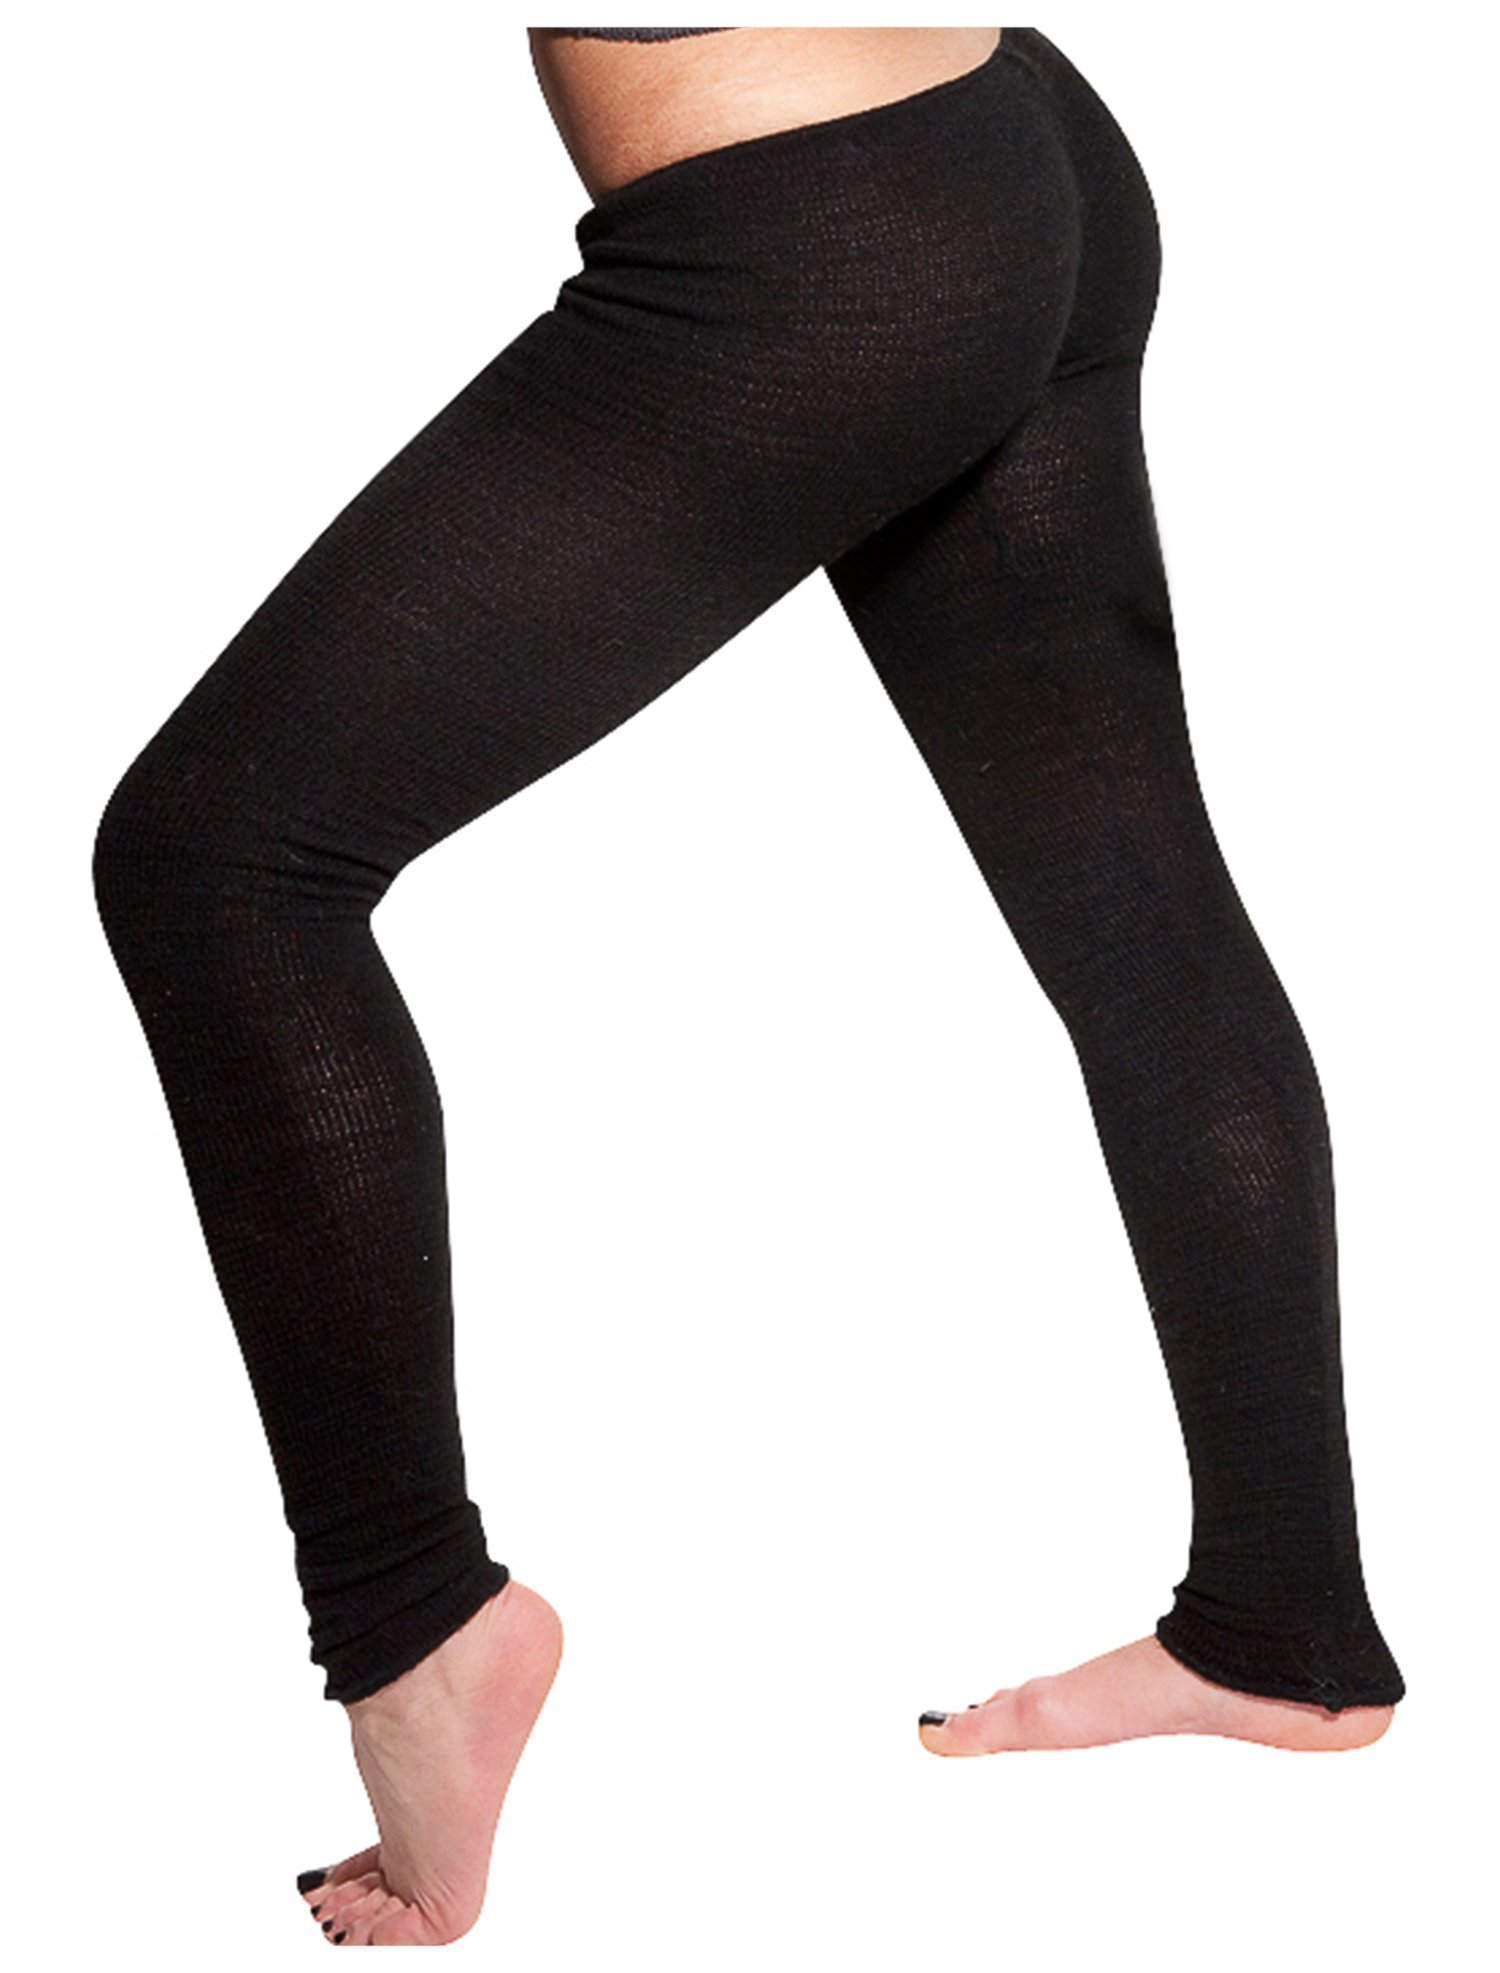 New York Black Extra Large Sexy Stretch Low Rise Leggings by KD dance New York Fine Knit Dancewear #MadeInUSA Happy New Year 2018